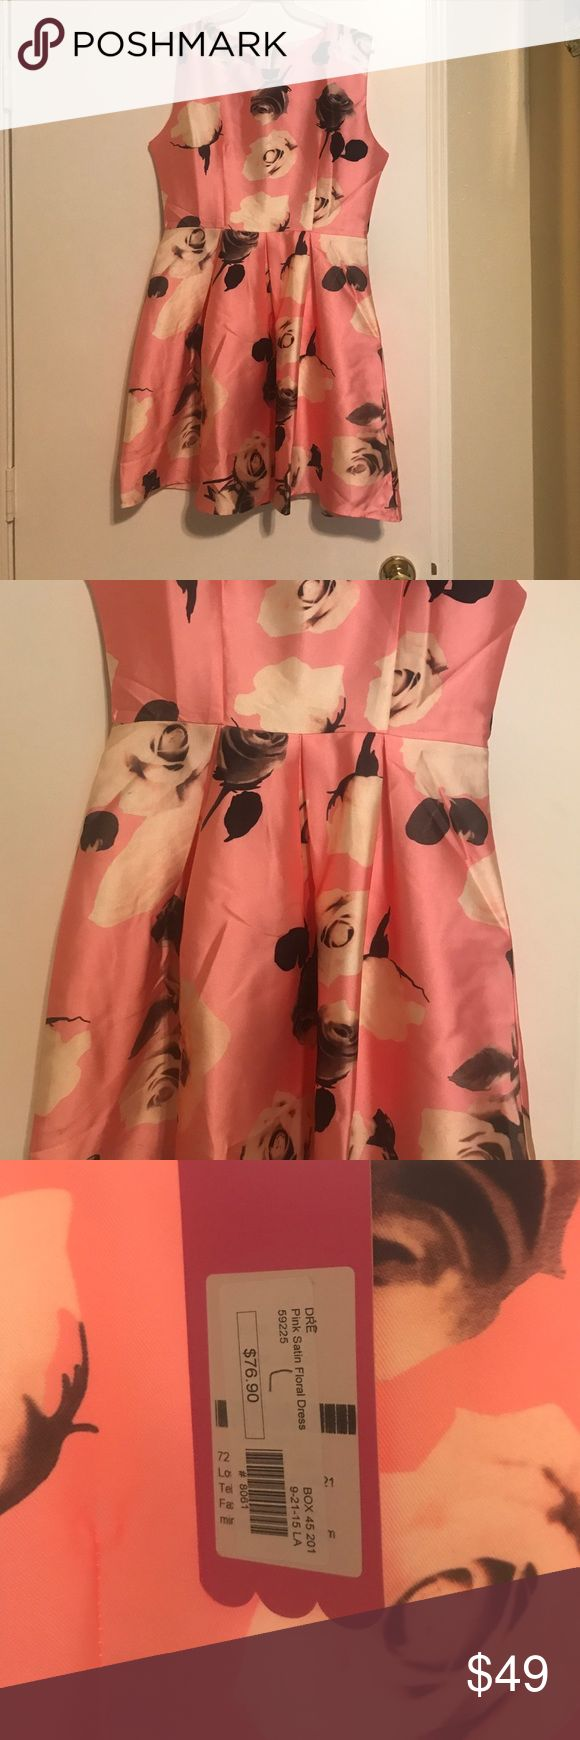 Pink Satin Floral Dress - Wow - Large Pink satin Floral dress mid length . Looks and feels awesome! Perfect for a night out Dresses Midi